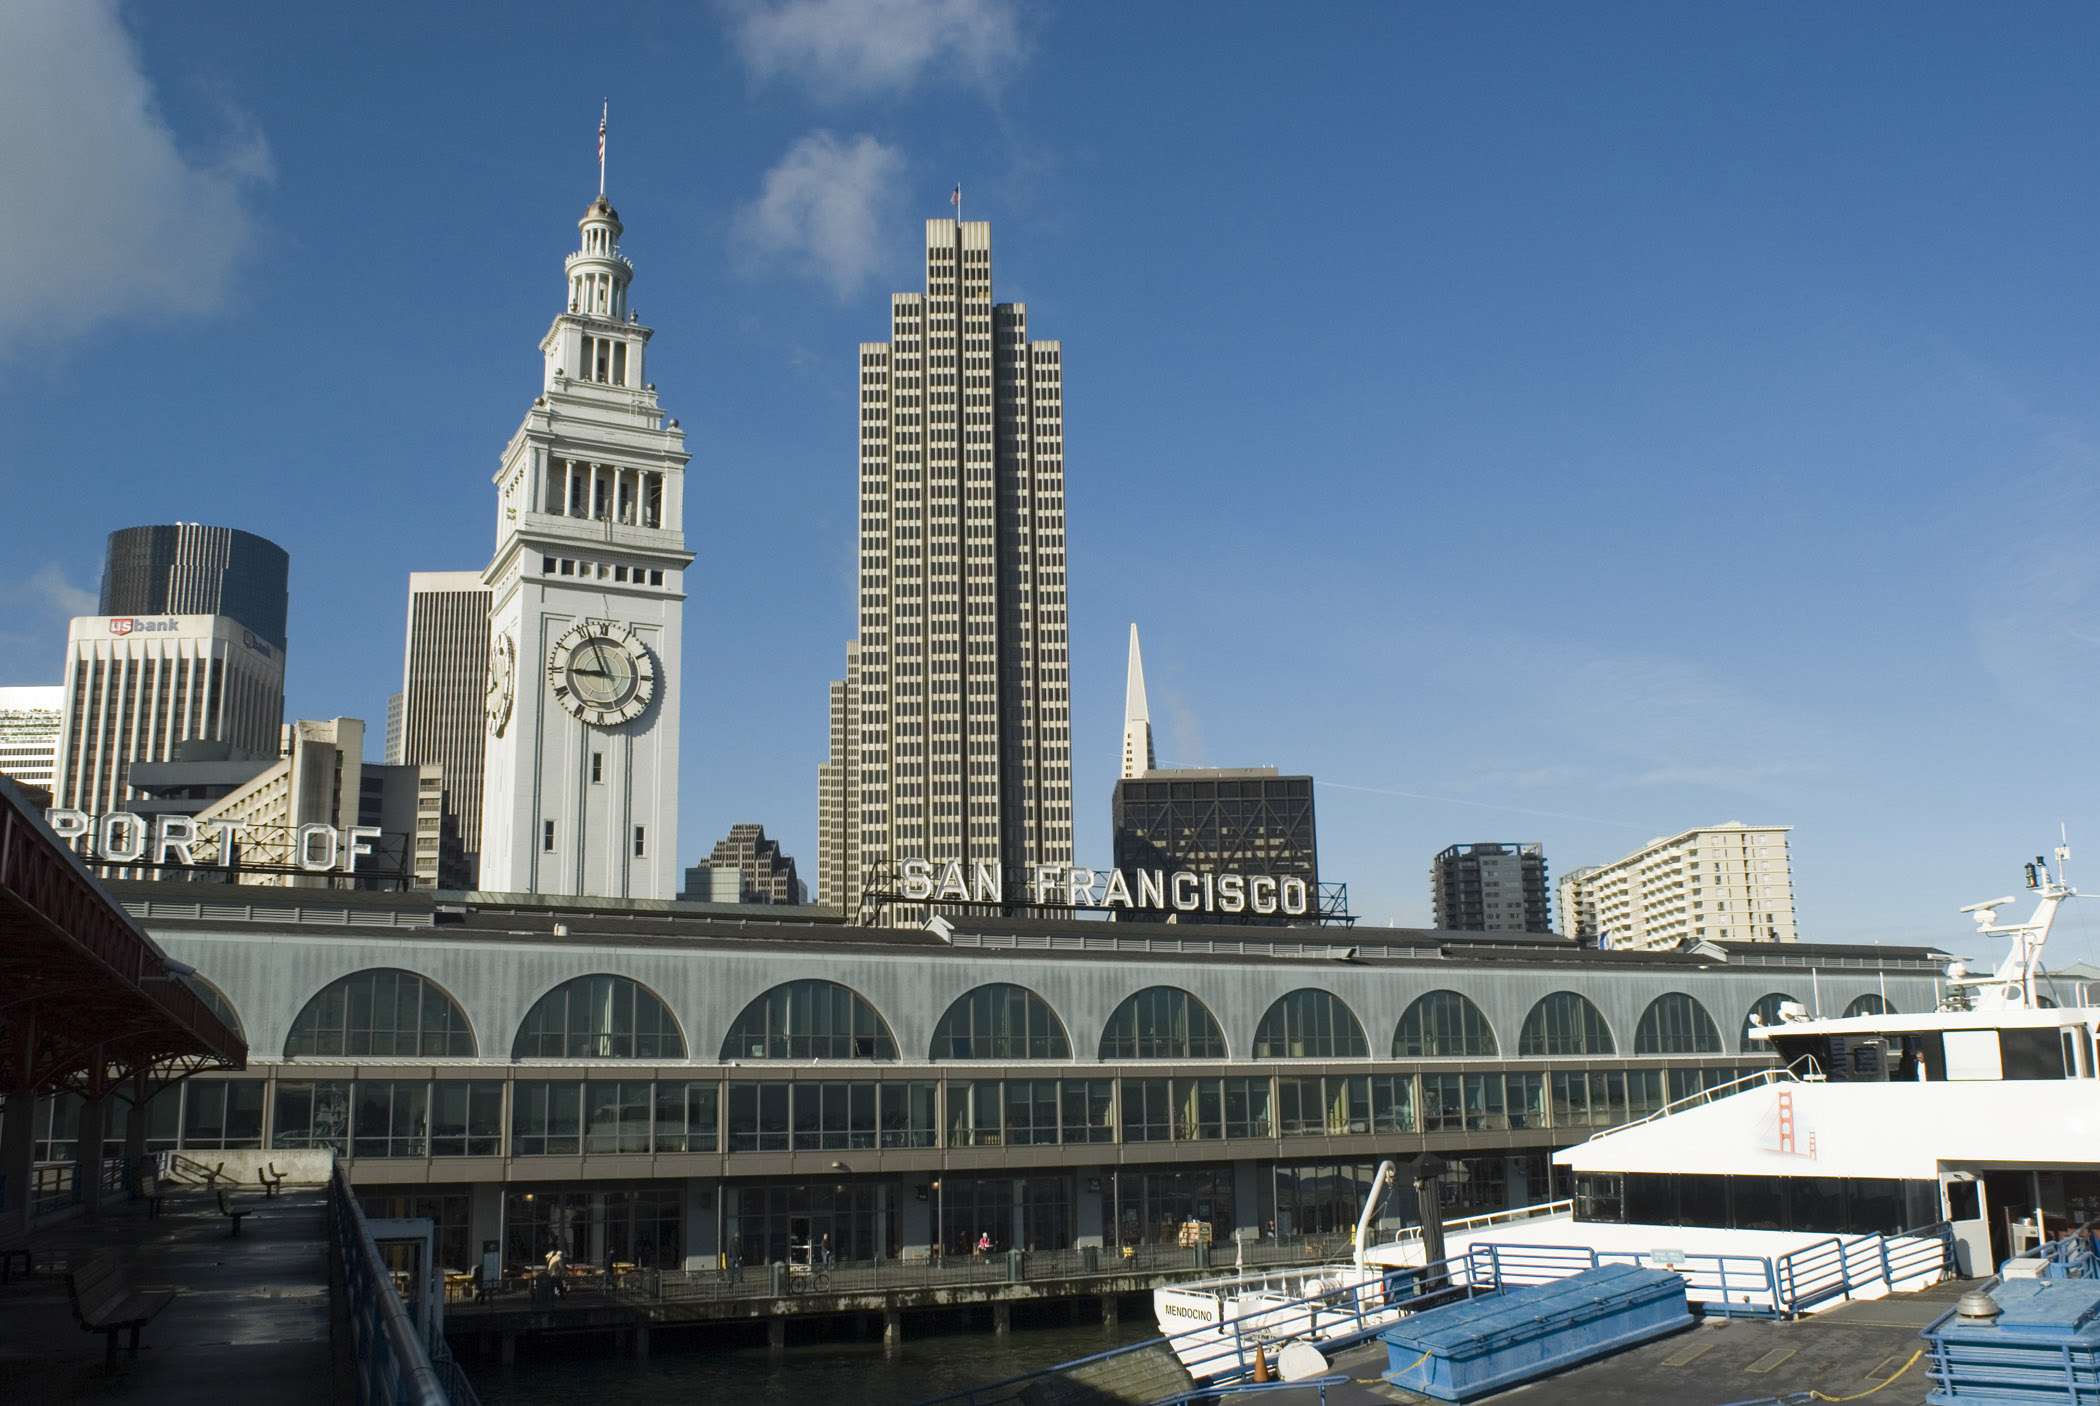 Famous Old Vintage Embarcadero Building in San Francisco, USA. Isolated on Light Blue Sky Background.